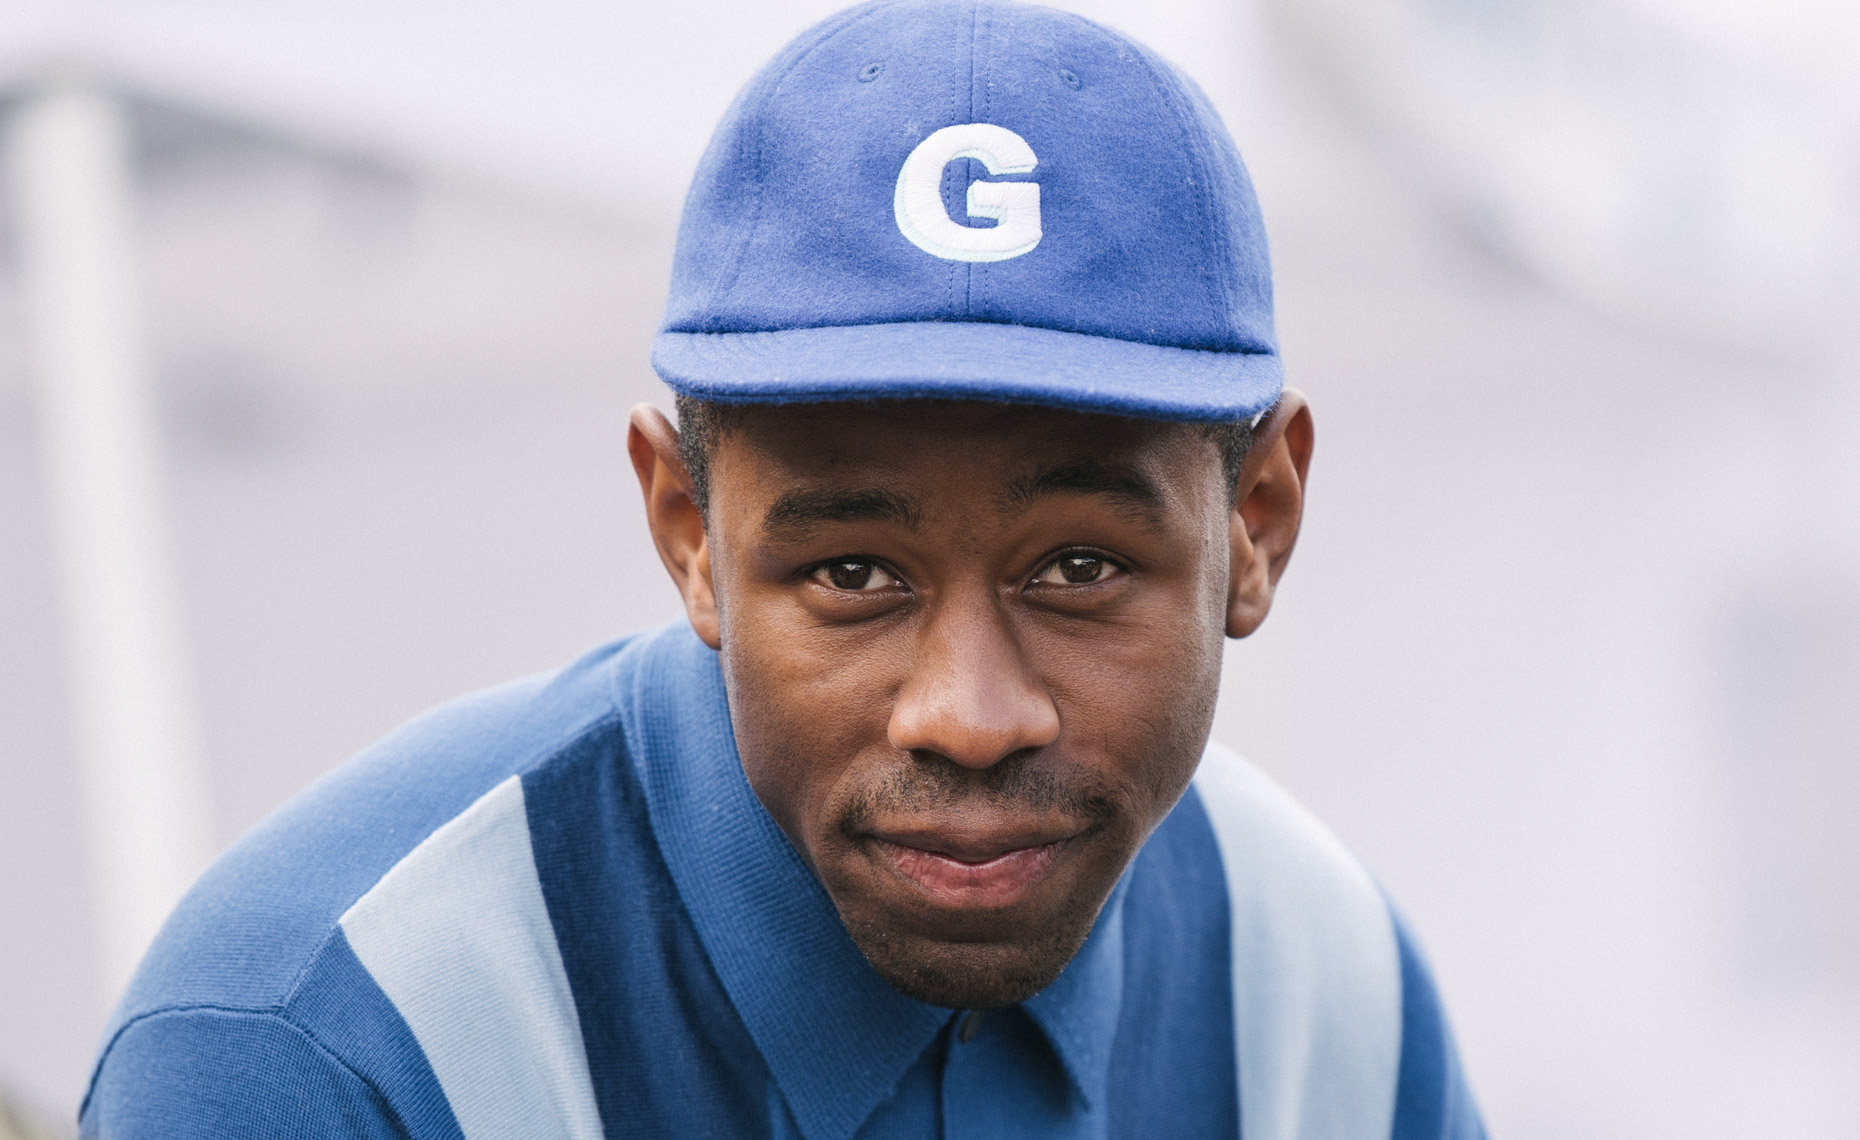 Straley_VICELAND_Tylerthecreator_61